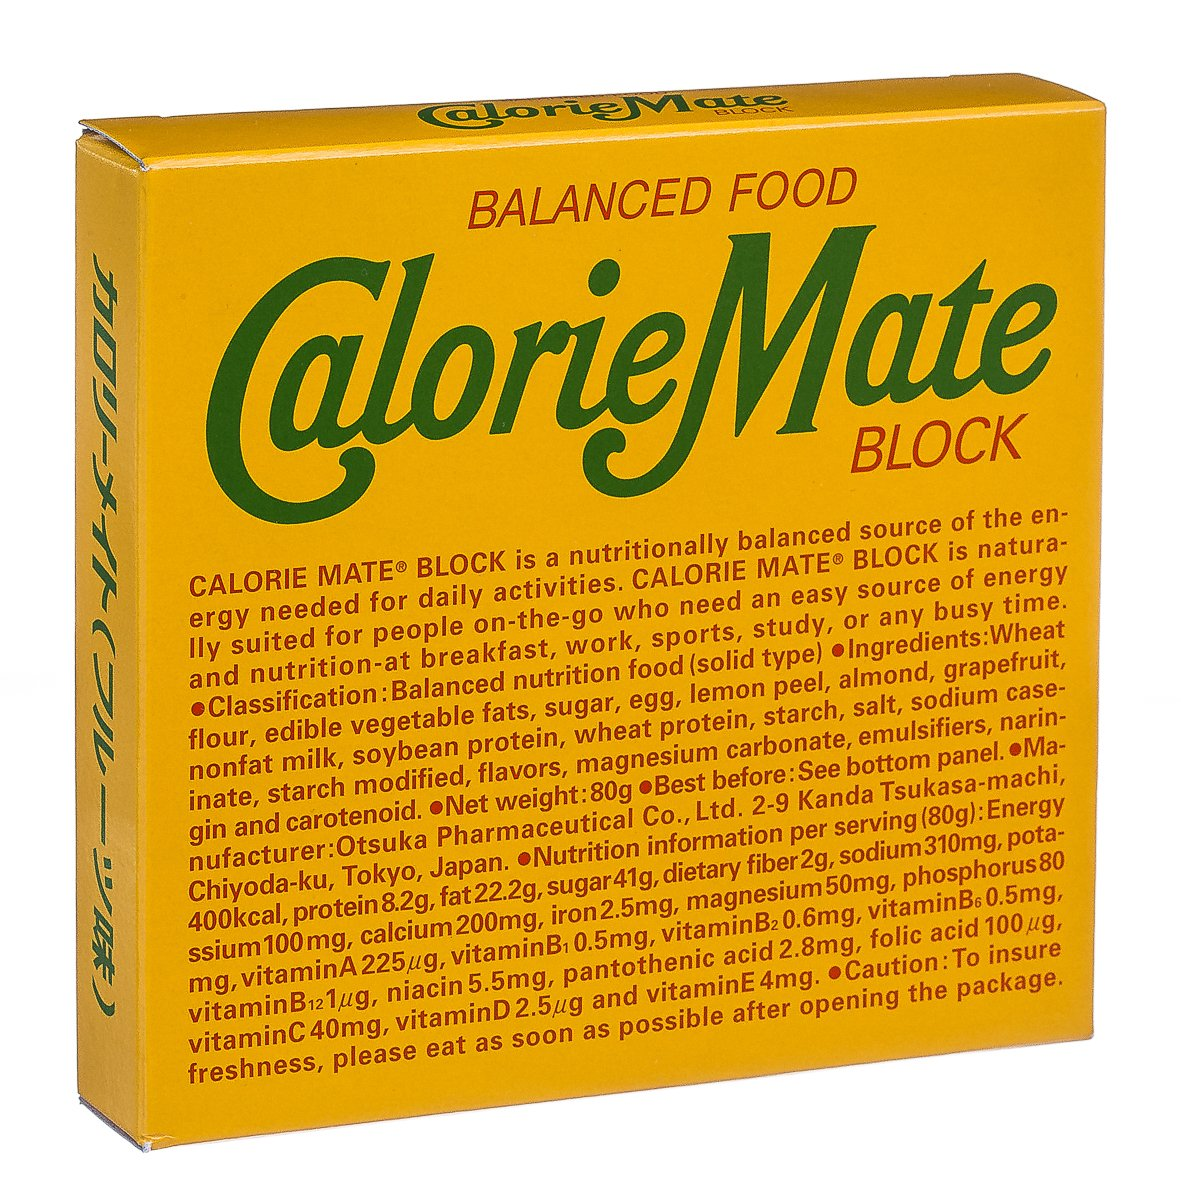 Calorie Mate Balanced Food Blocked Calories Fruits Flavor 1 Box(4 Bars) x 10 Boxes (Japan Import)